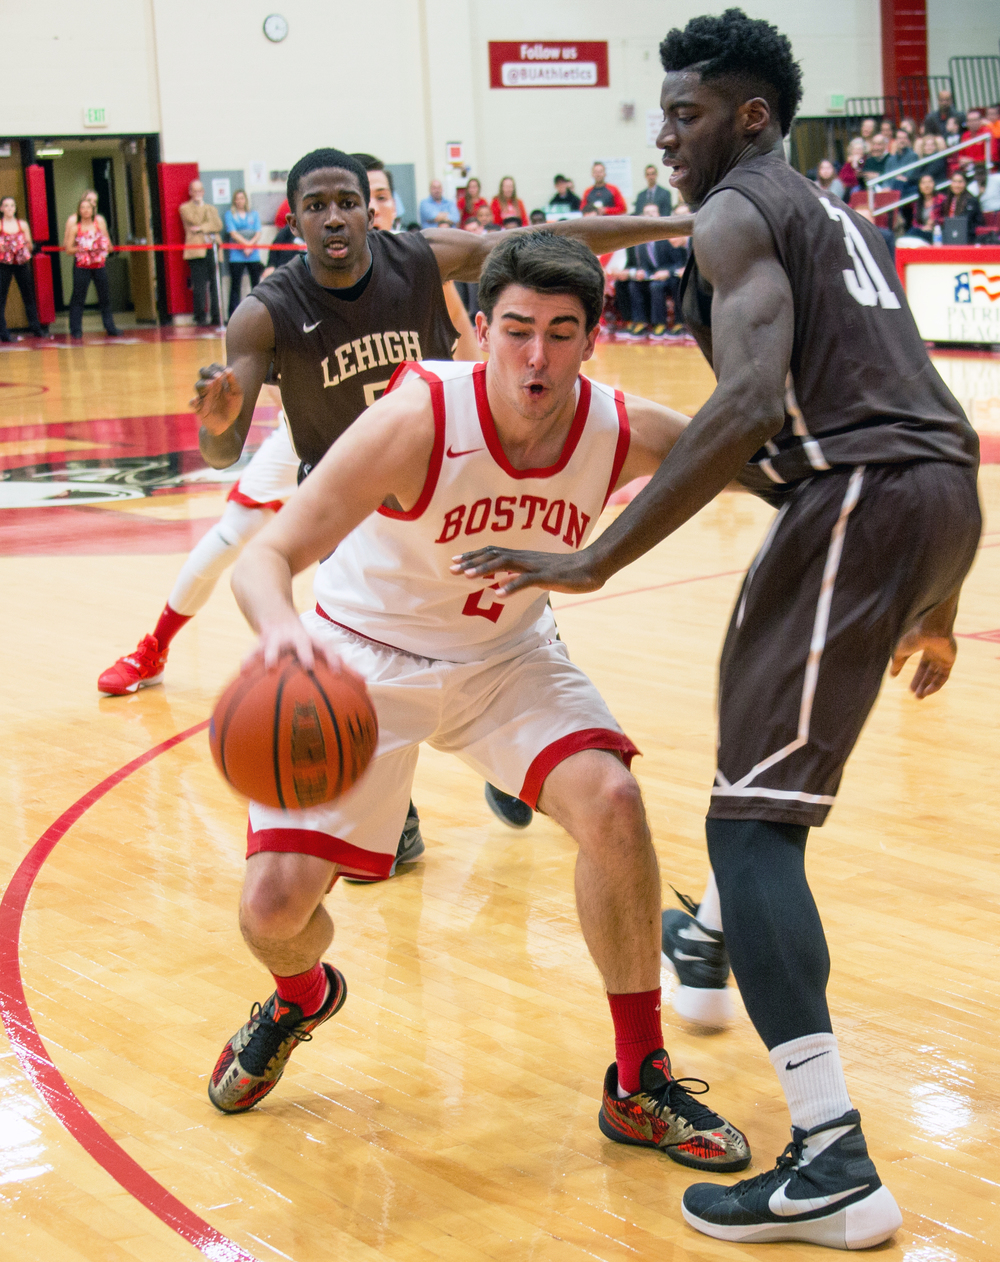 Boston University men's basketball senior guard John Papale dribbles past opponents from Lehigh University's during a game at Boston University's Case Gym in Boston Mass., on Jan. 31, 2016. Papale scored in the game's last 30 seconds to bring the score to 75-73.